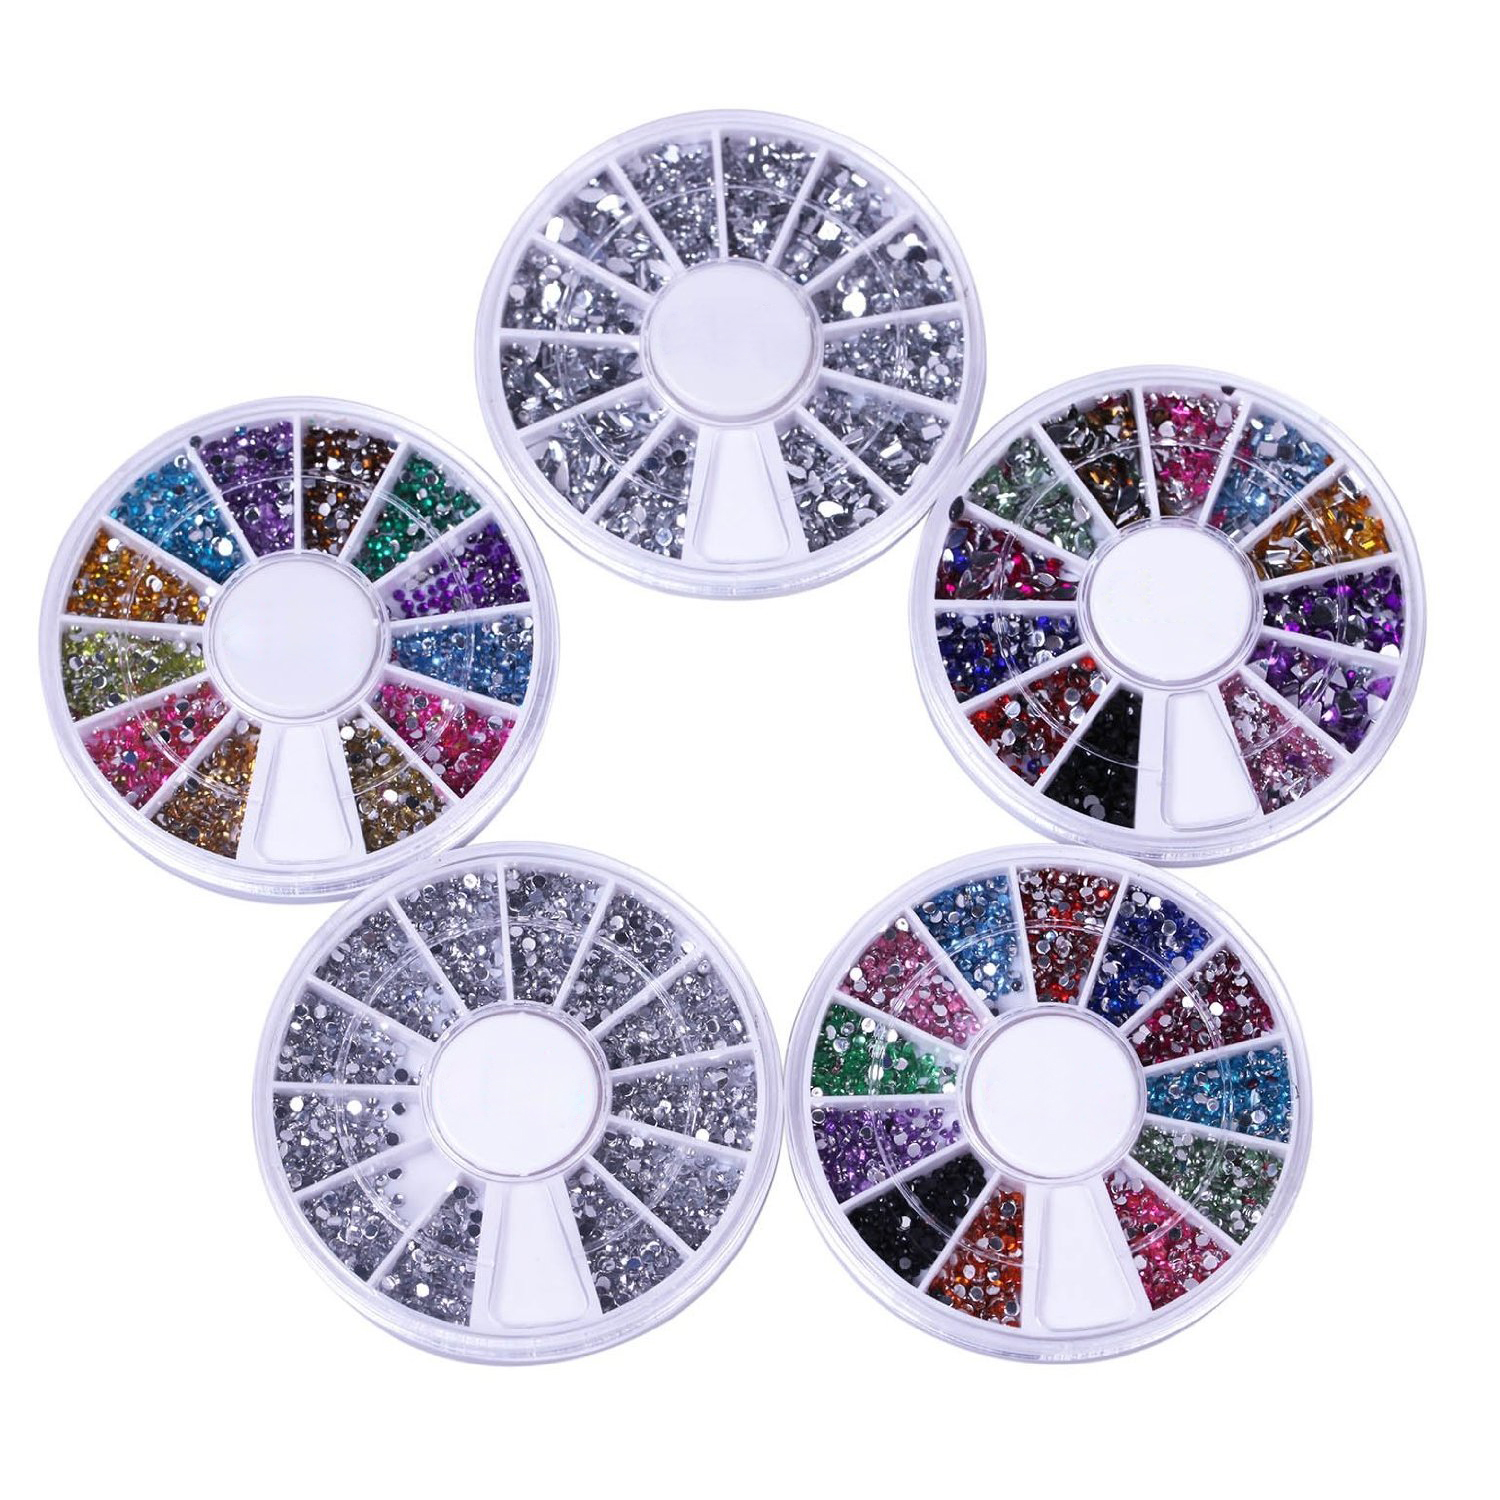 Nail Art Kit for manicure /pedicure for nail decoration ...